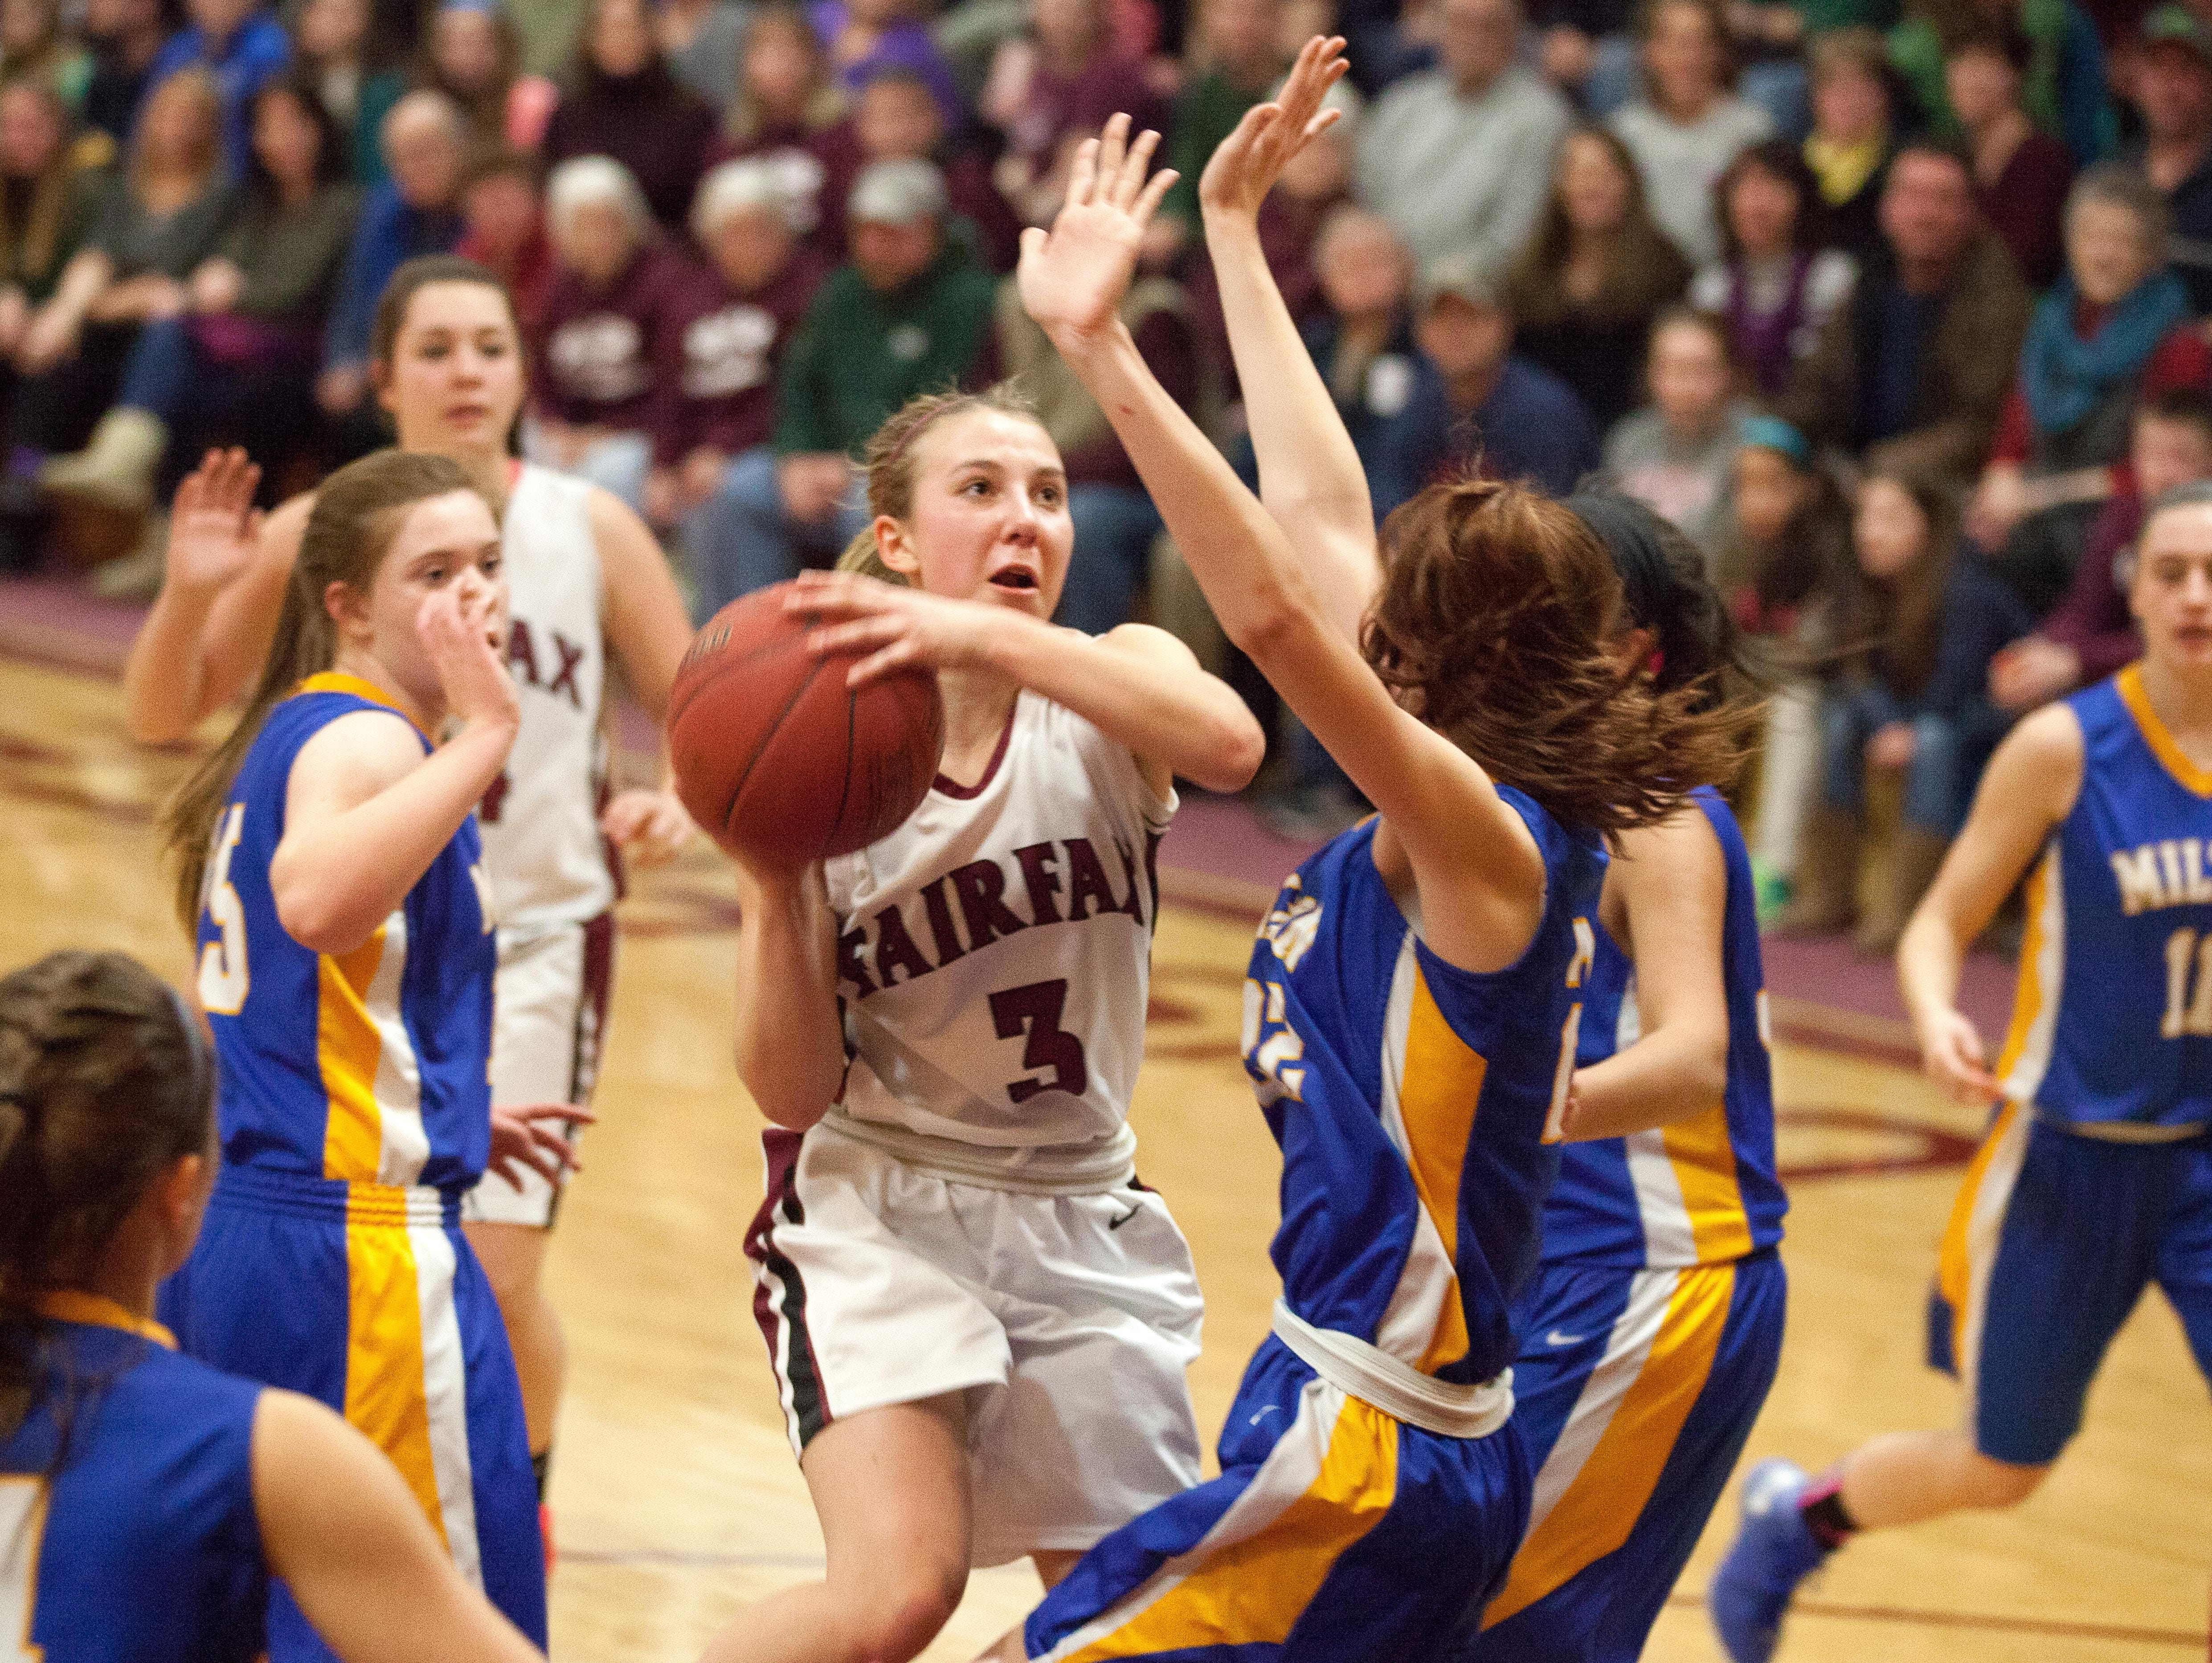 BFA Fairfax's Chace Carpenter works the lane in heavy traffic on her way to beating the school record in points scored for both boys and girls baseketball.